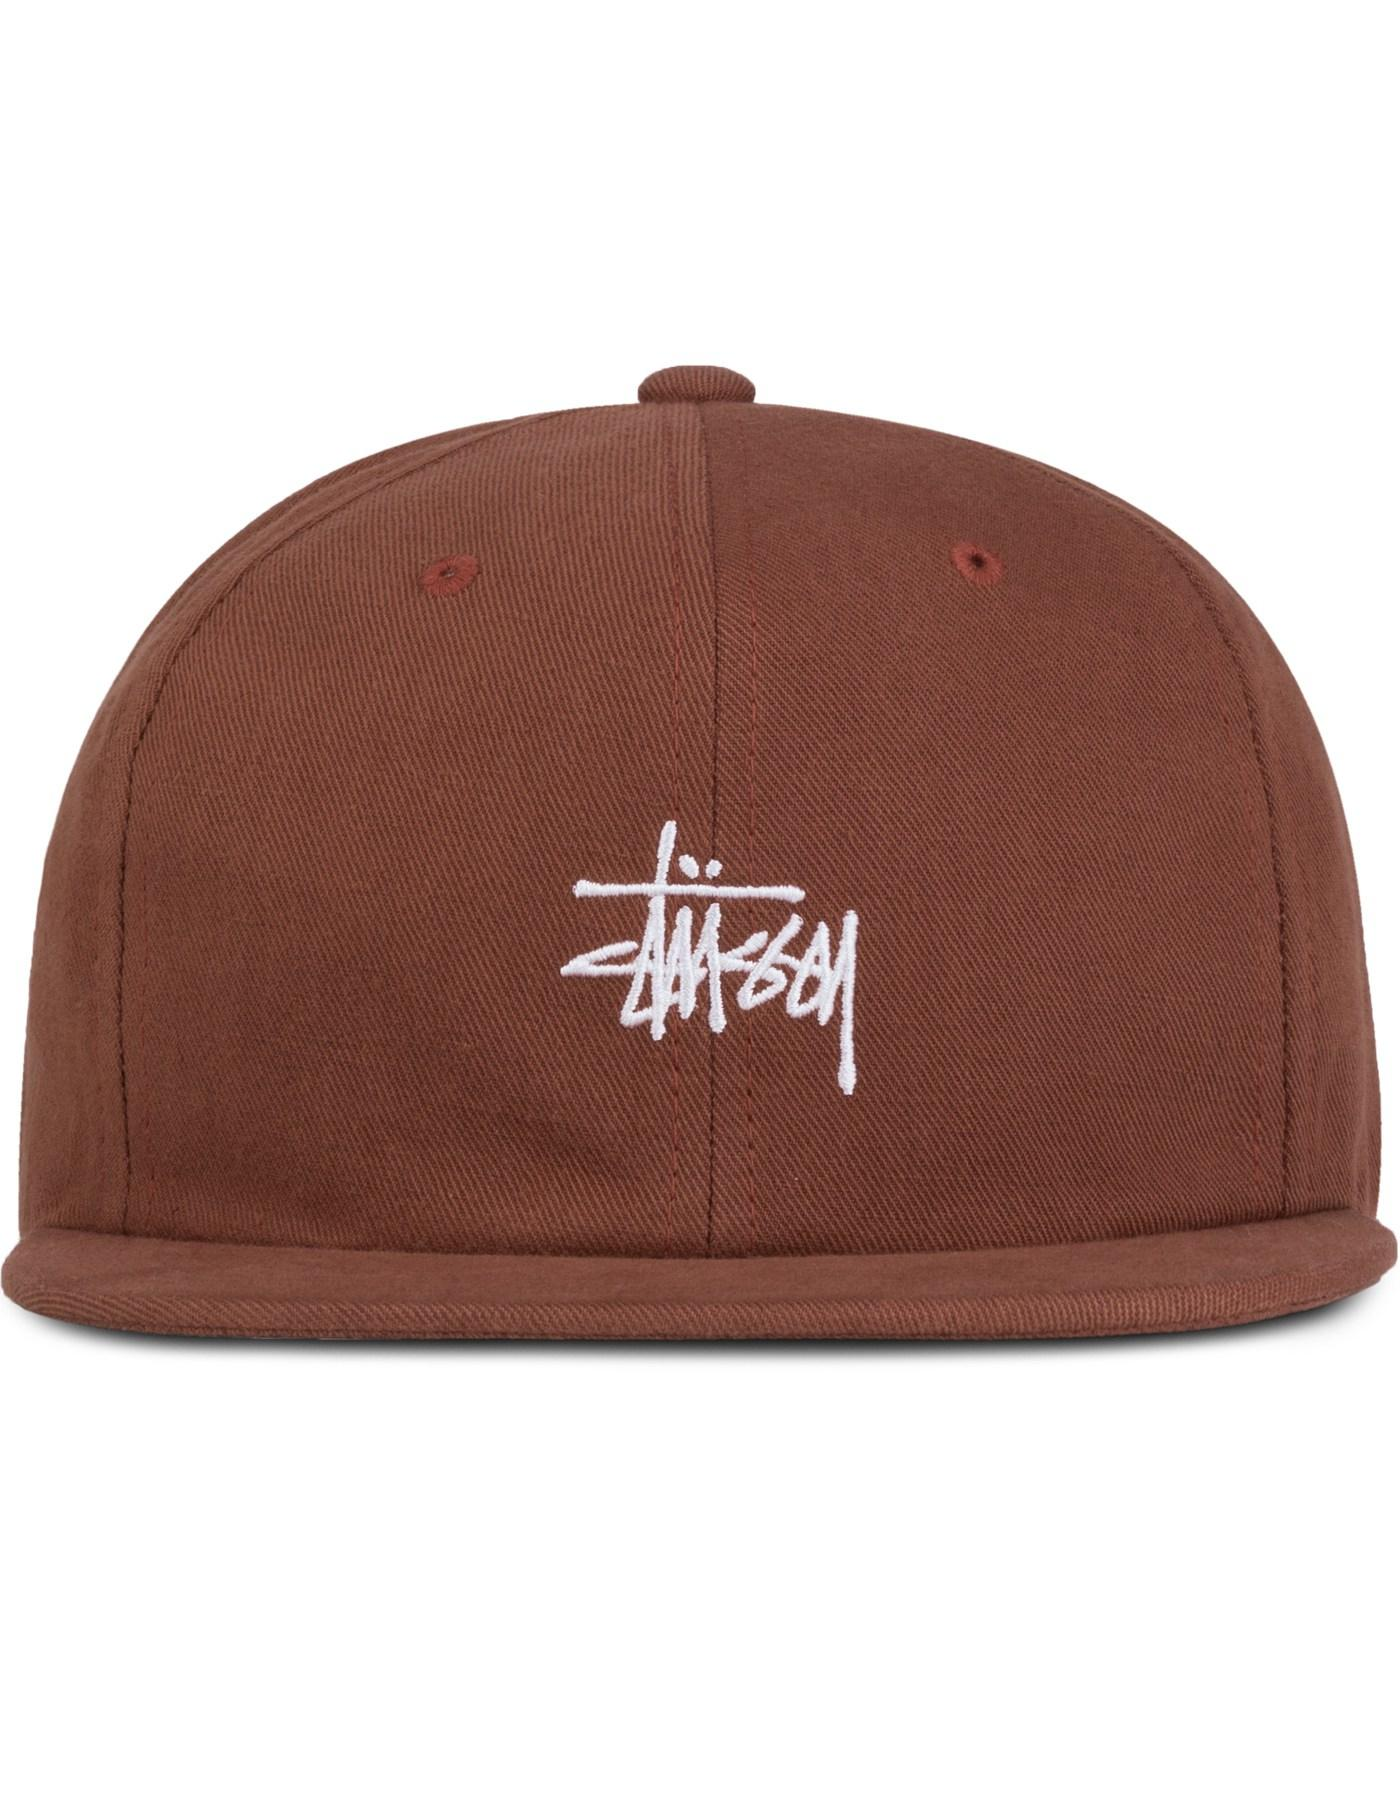 534e824f448 Lyst - Stussy Smooth Stock Twill Cap for Men